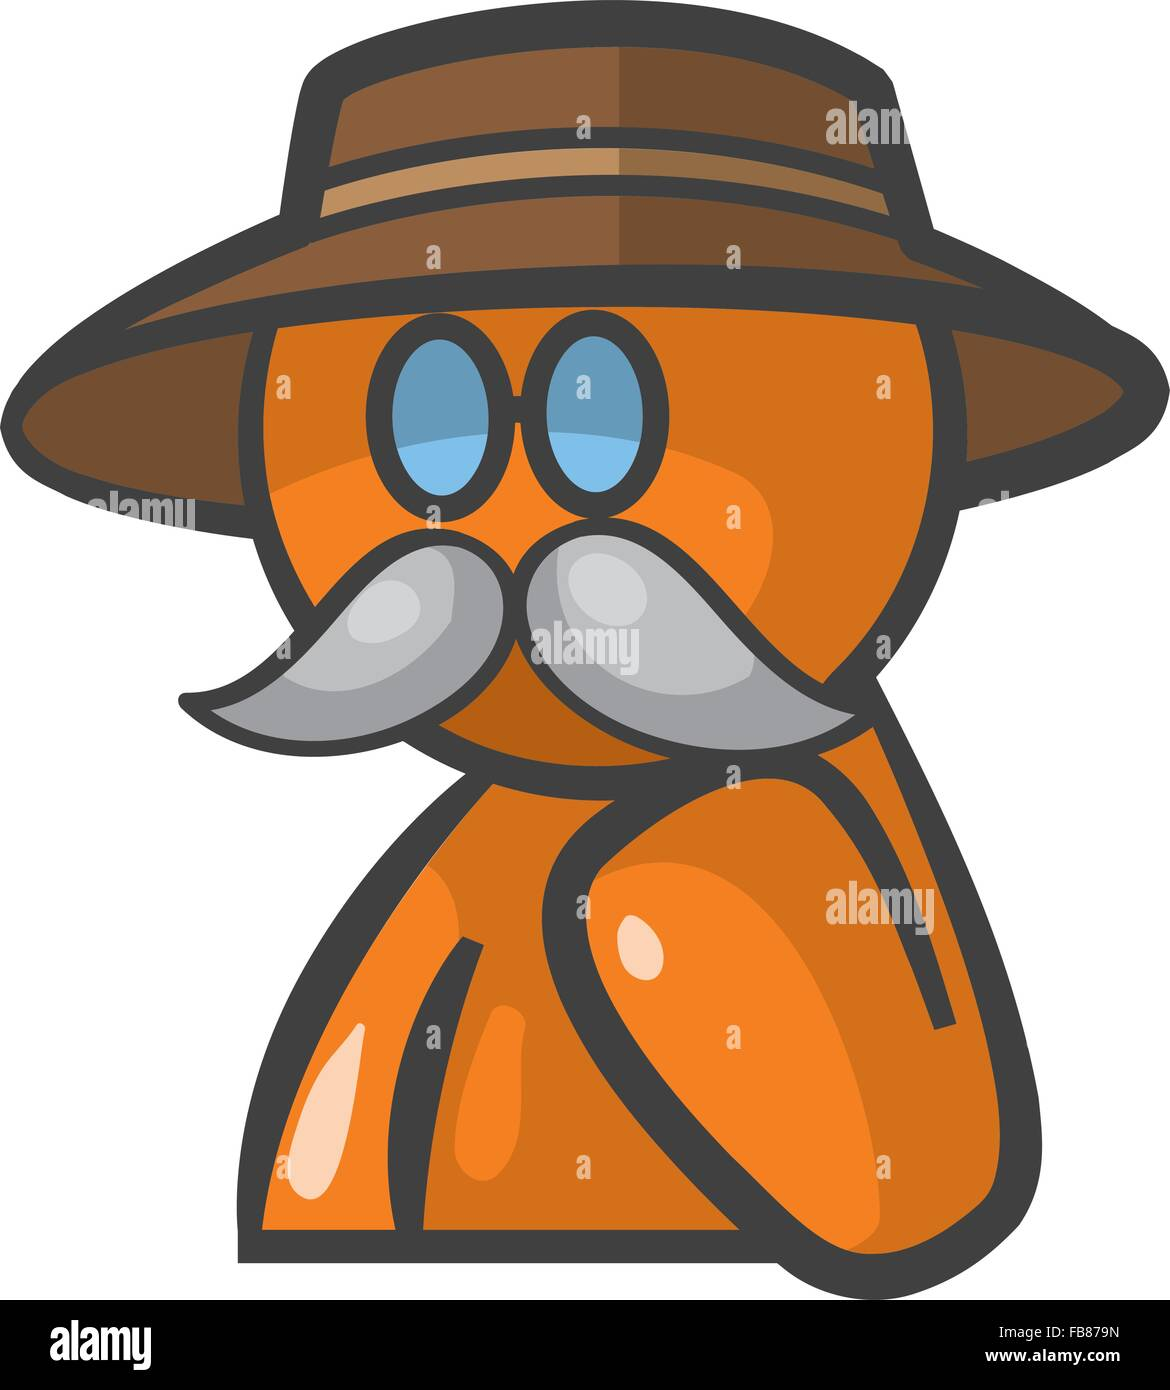 Orange person Dr Livingstone avatar with glasses, mustache, and hat. - Stock Vector